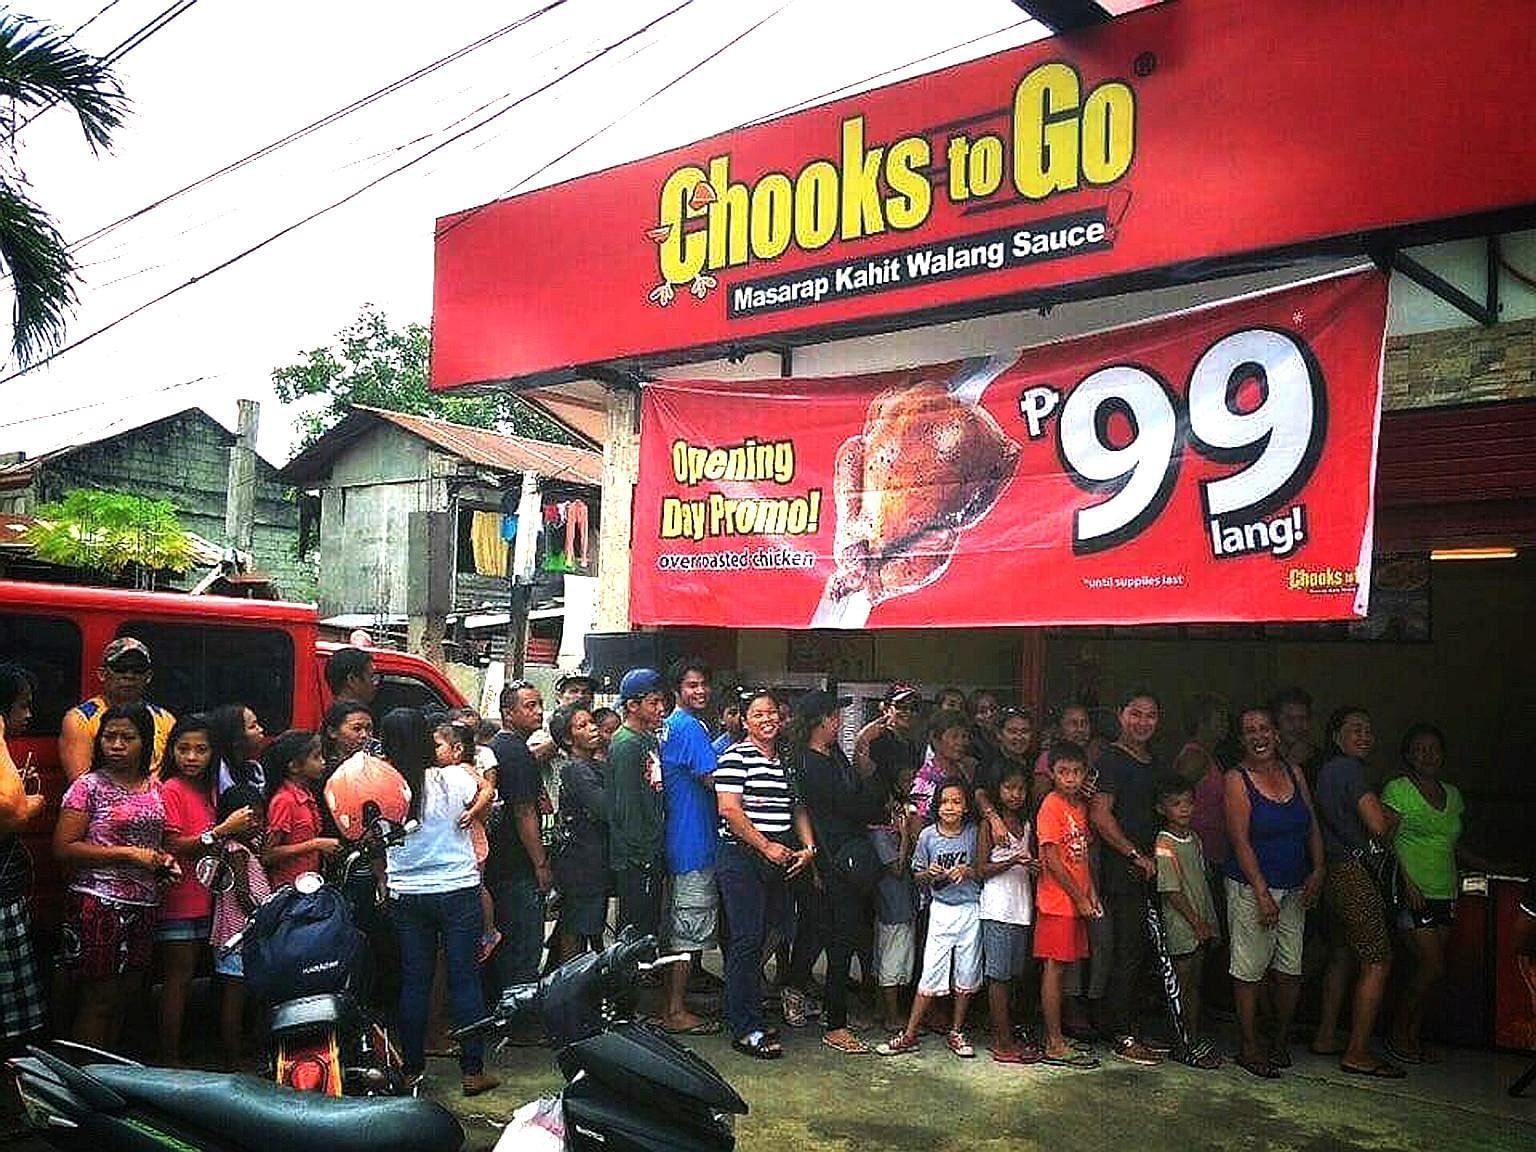 Long queues at a Chooks To Go outlet outside Manila. The Philippines' largest rotisserie chicken chain has over 1,500 kiosks across the country, and its popularity has been a symbol of high consumer demand.